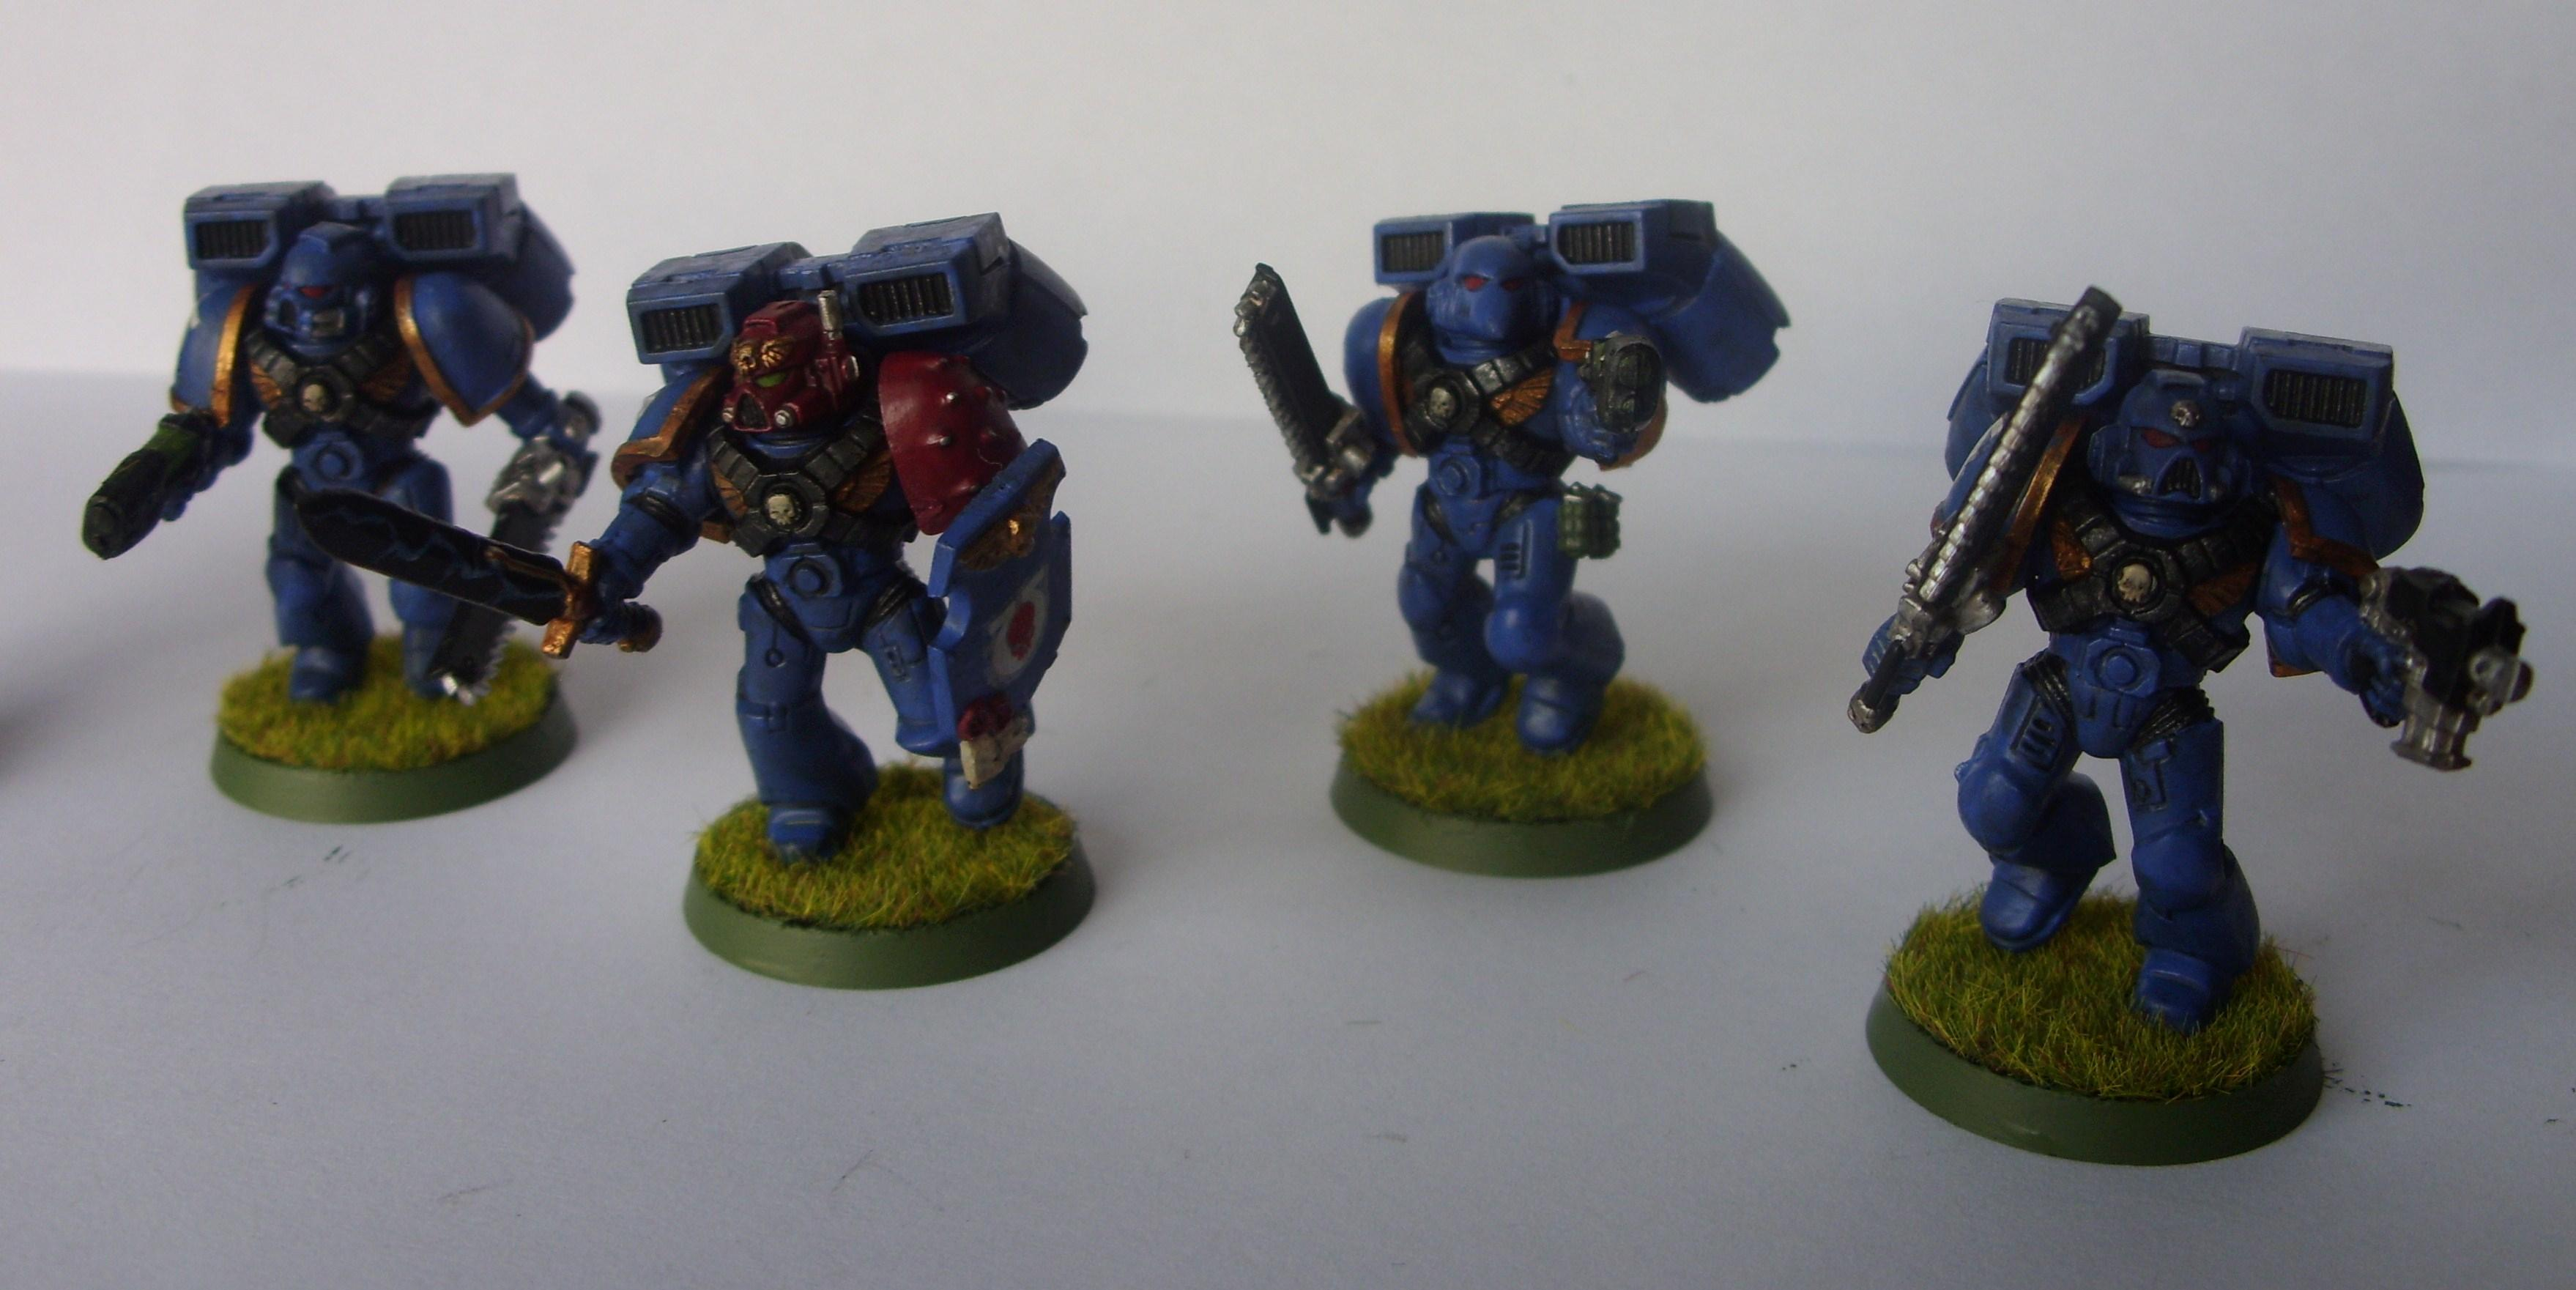 Assault On Black Reach, Assault Squad, Bike, Captain, Chaplain, Devastator, Dreadnought, Jump Pack, Rhino, Scouts, Snipers, Space Marines, Tactical Squad, Ultramarines, Venerable